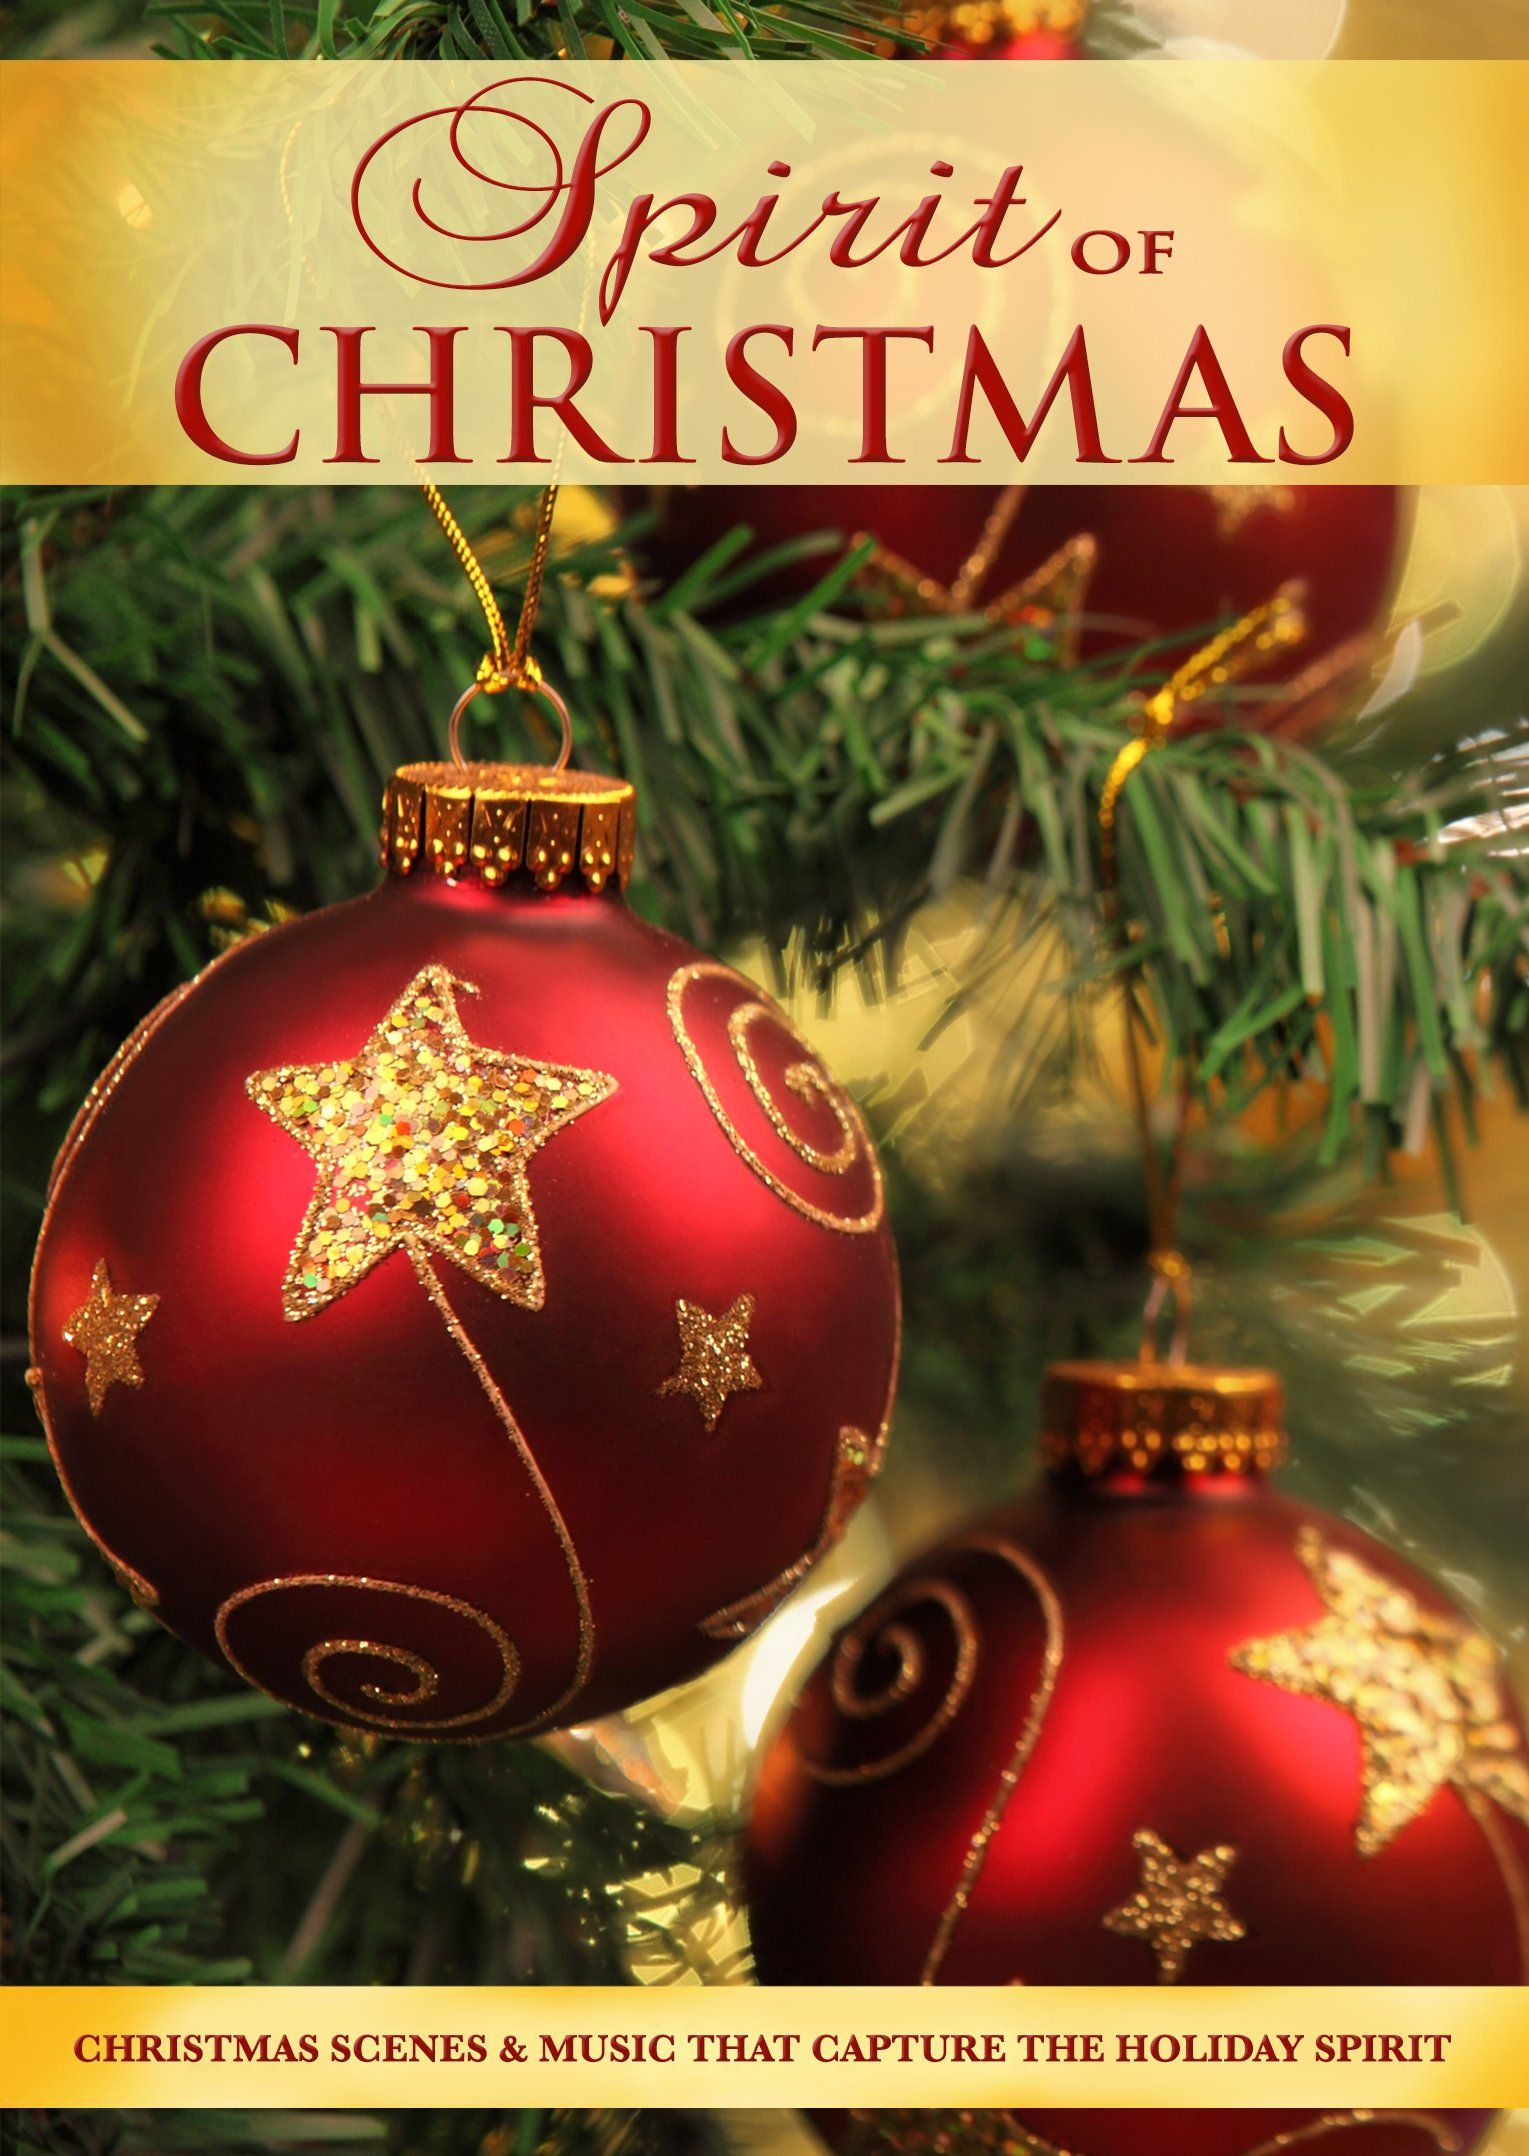 Spirit of Christmas, The | November 4th, 2014 DVD/Blu-ray Releases ...